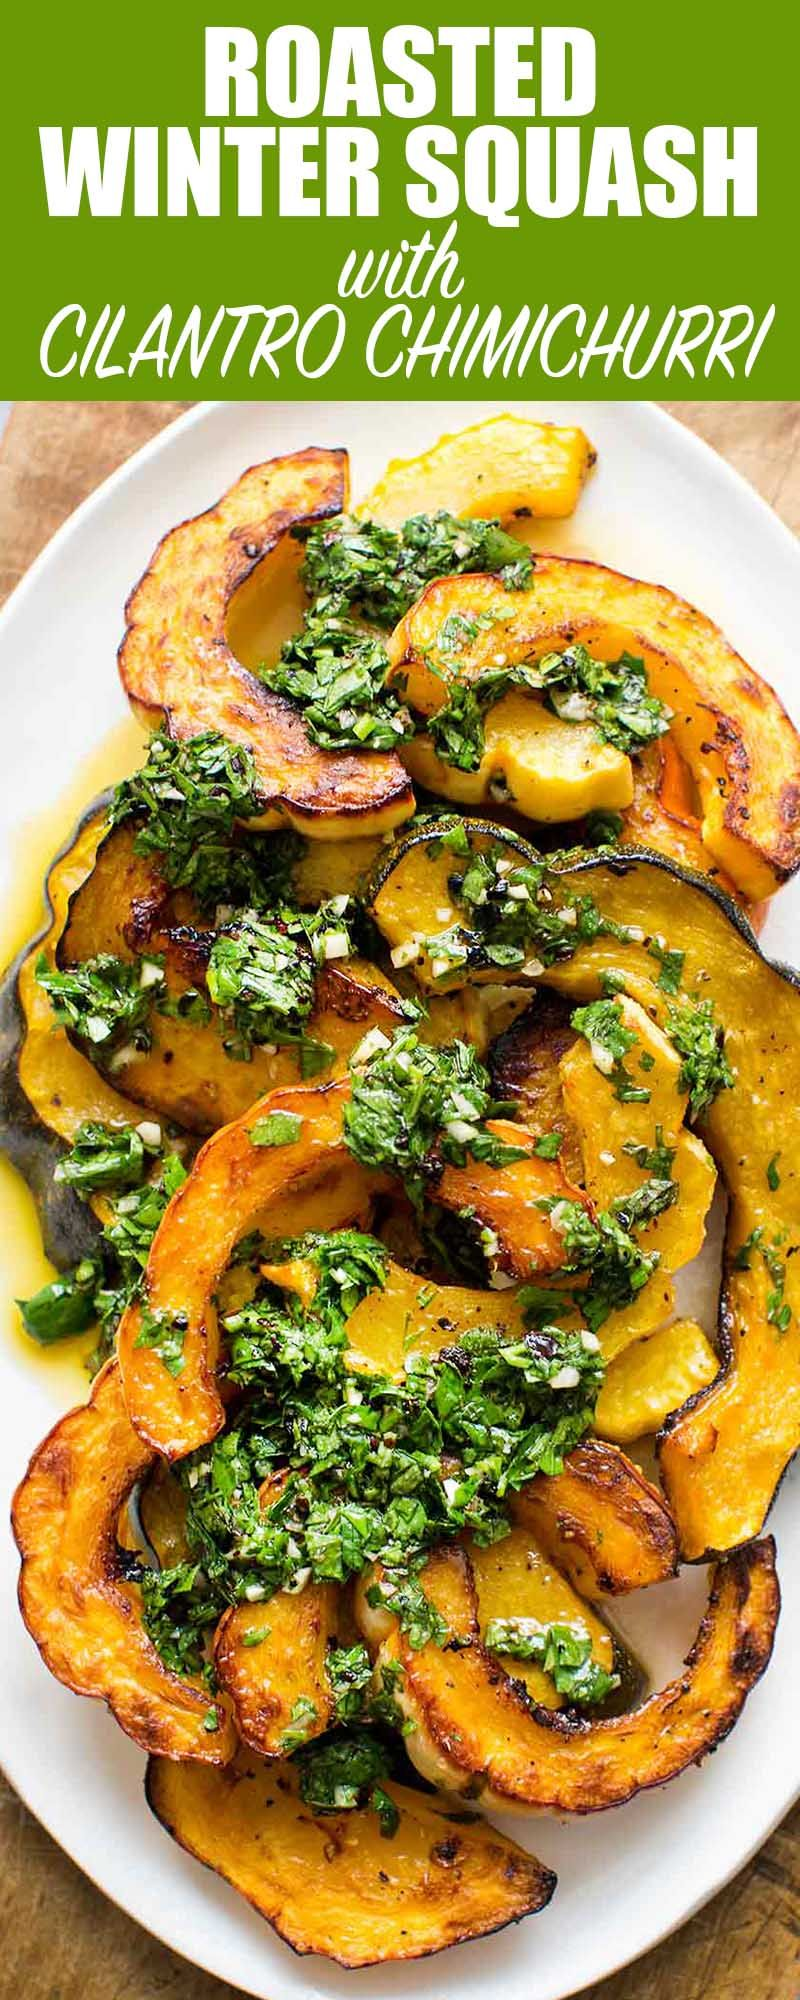 Roasted Winter Squash With Cilantro Chimichurri Recipe With